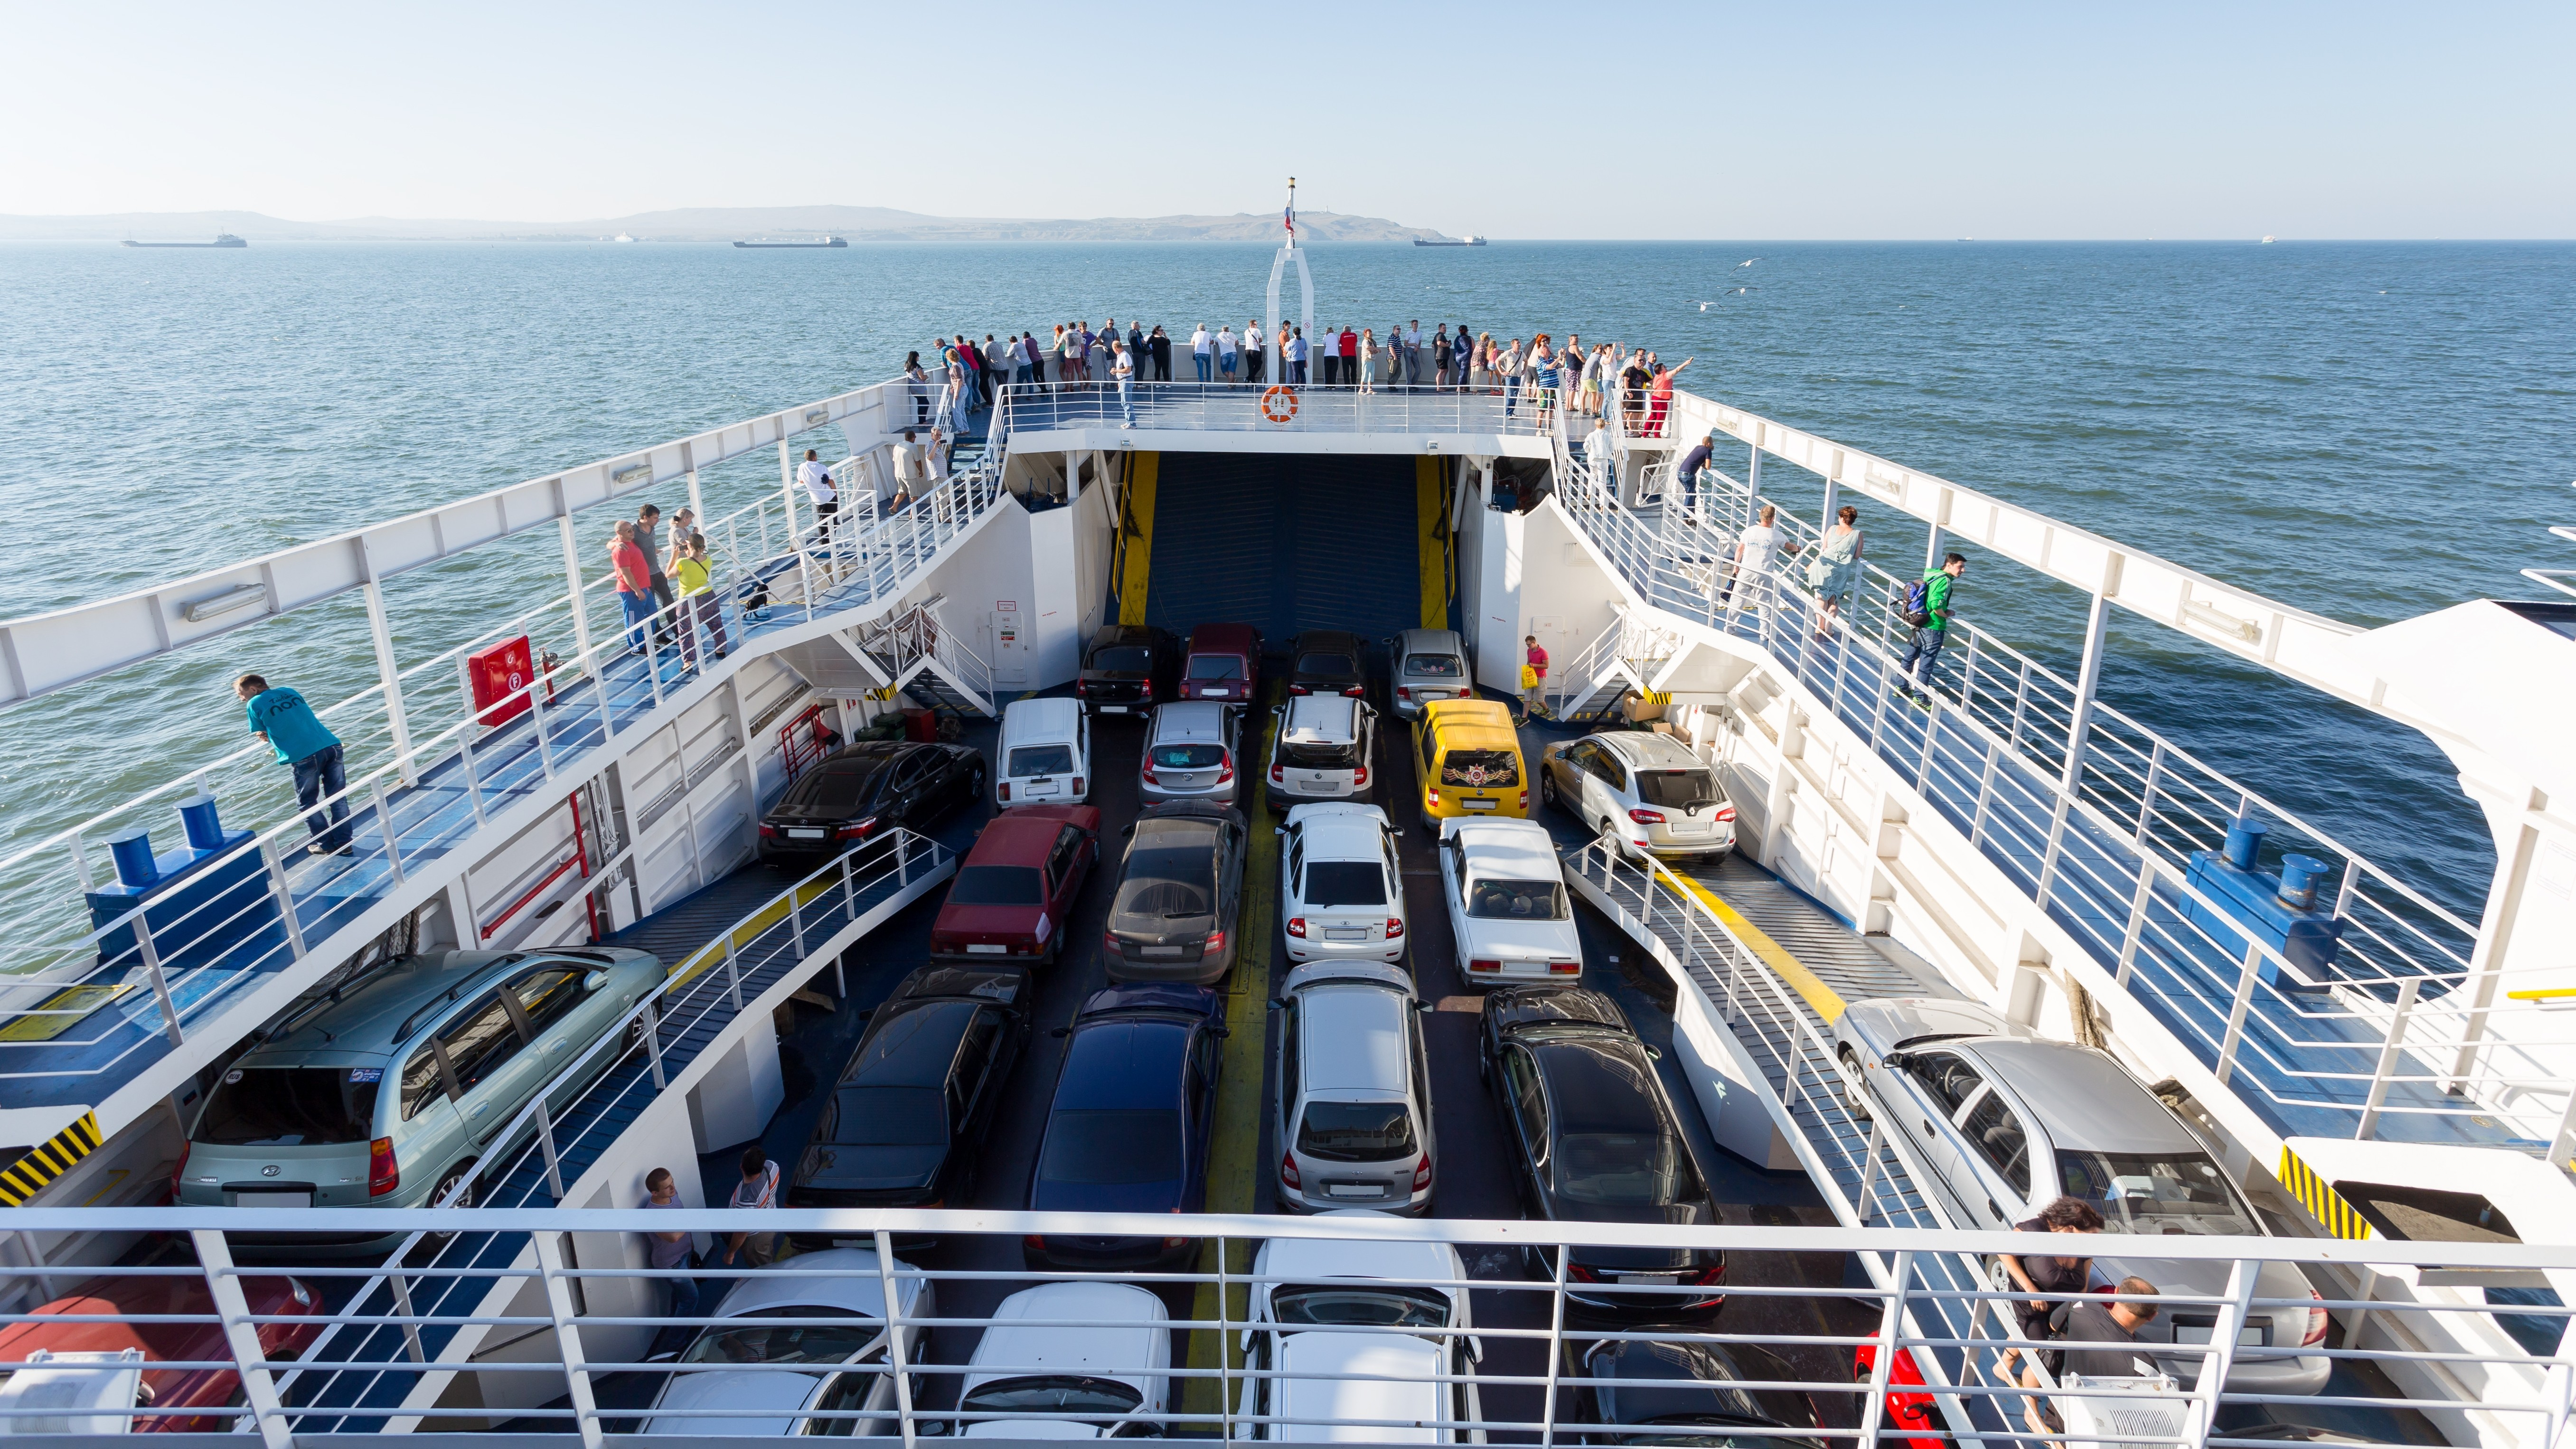 crimea, kerch ferry swimming with cars and tourists